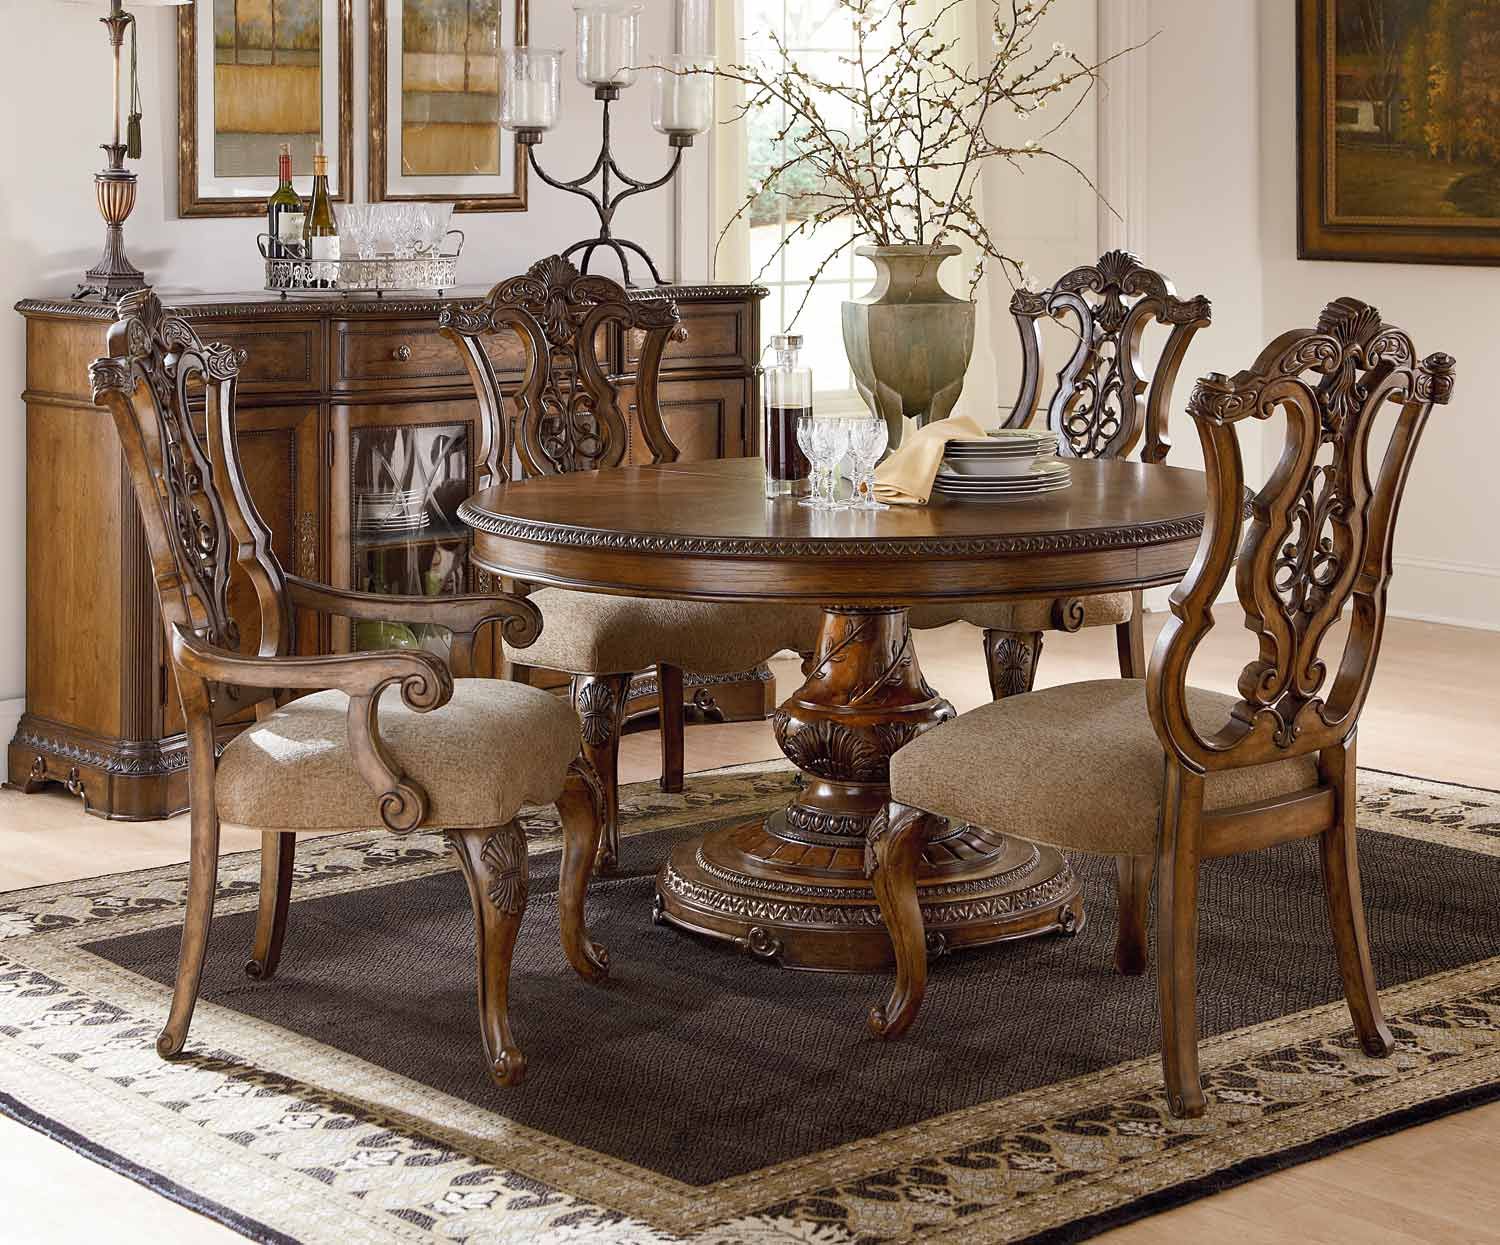 Legacy Classic Pemberleigh Round/Oval Dining Set with Pierced Chair - Brandy/Burnished Edges